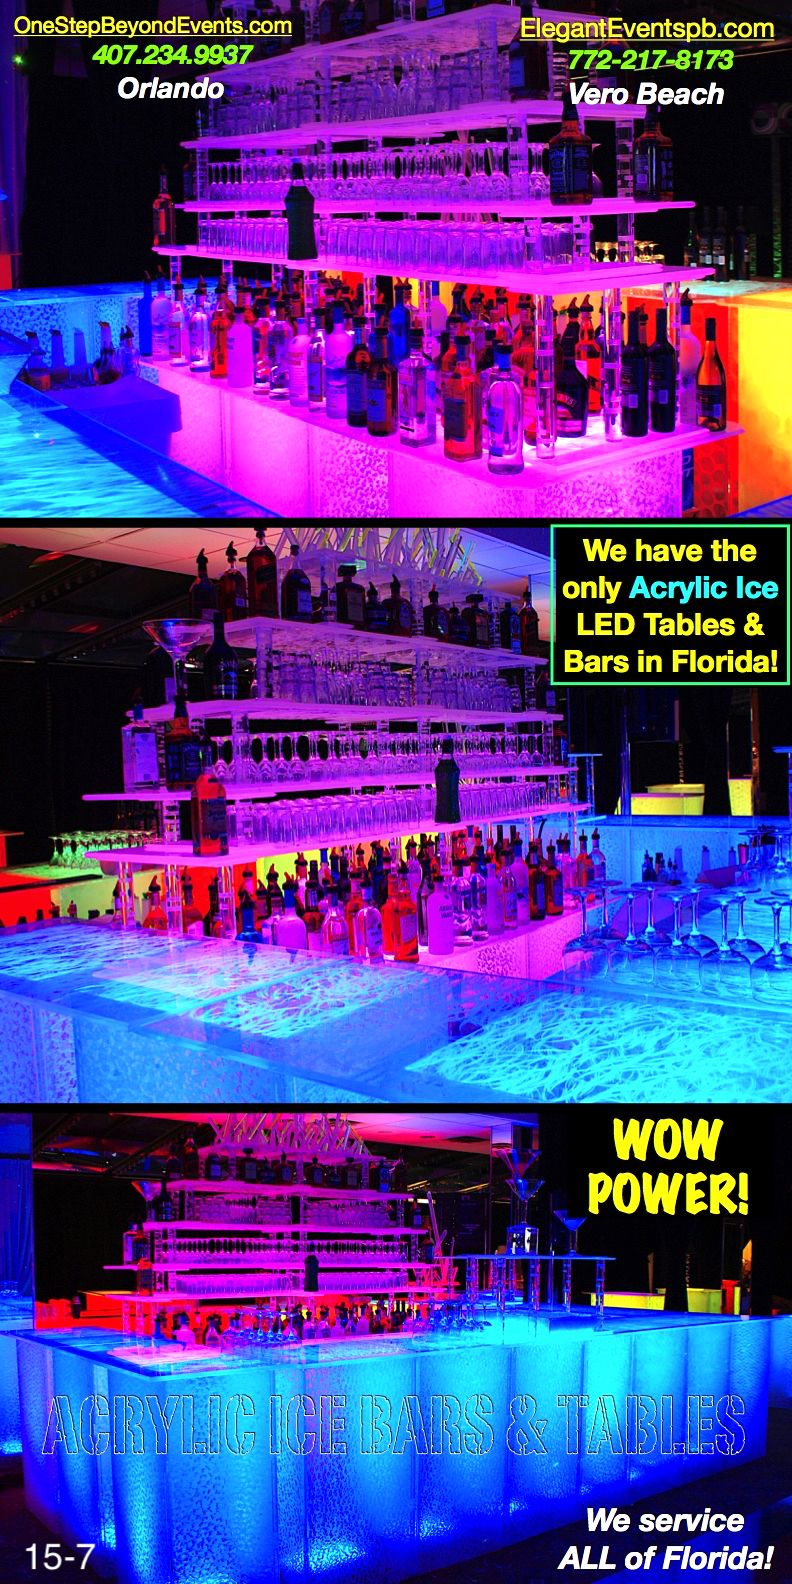 Led tables are affordable lowest prices acrylic ice led